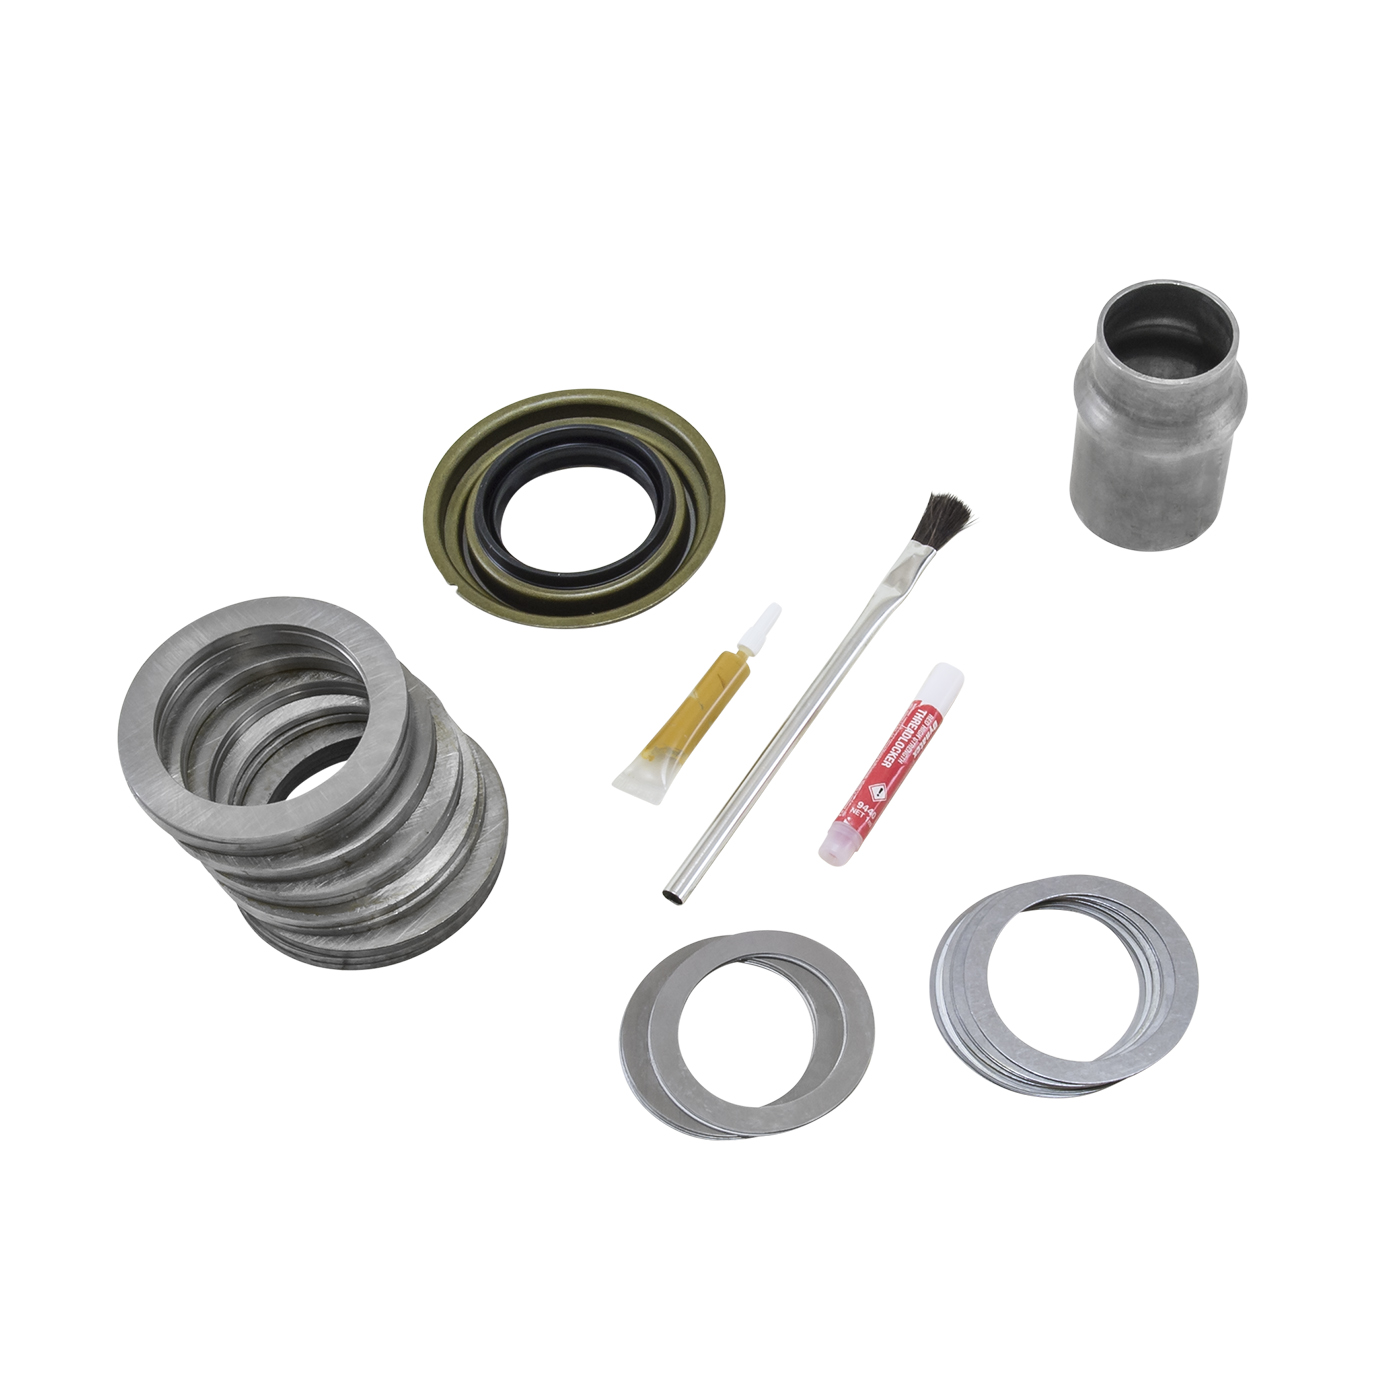 MK D44HD - Yukon Minor install kit for Dana 44-HD differential.